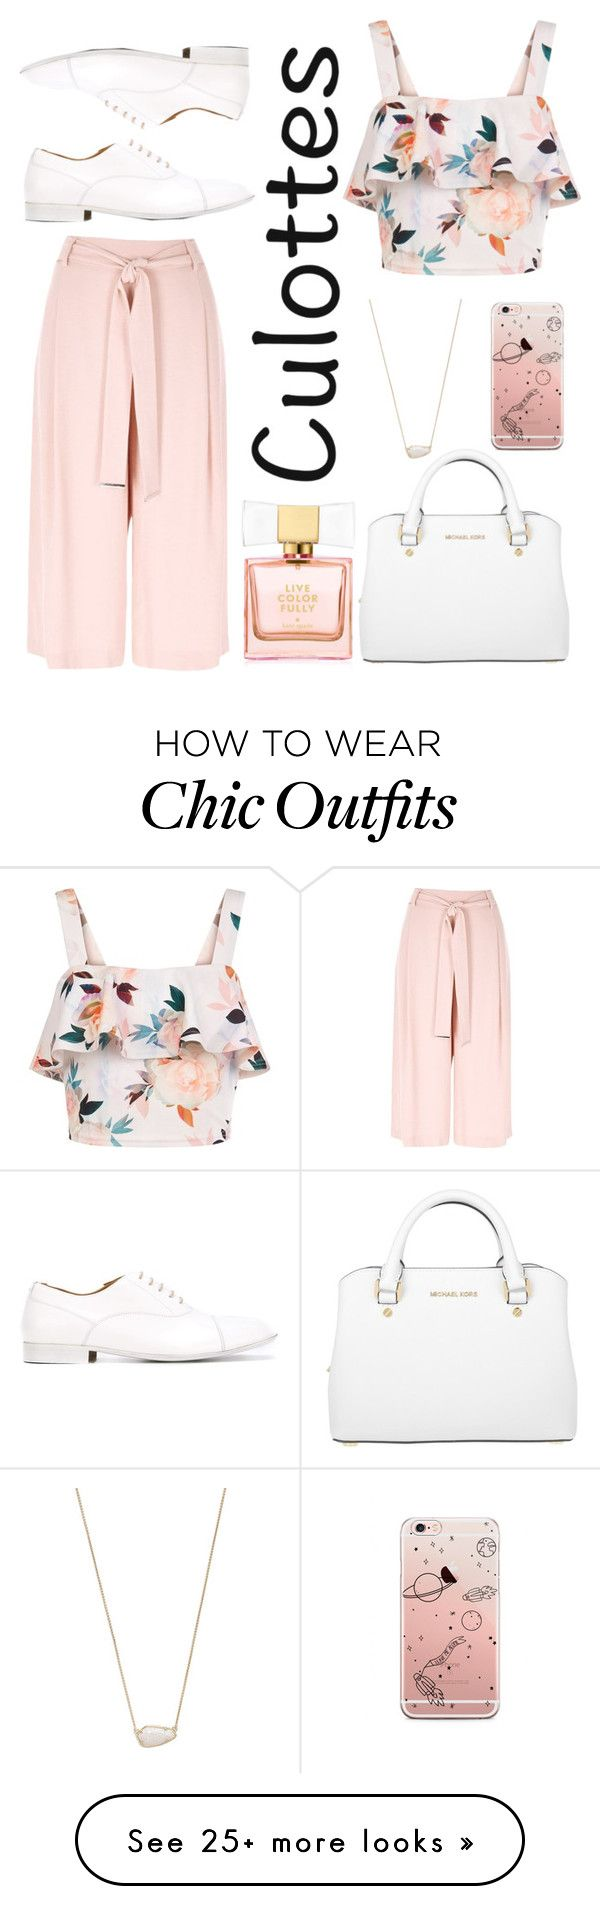 """tricky trend - culottes"" by adela-pysova on Polyvore featuring River Island, New Look, Michael Kors, Kate Spade, Kendra Scott, Maison Margiela, TrickyTrend and culottes"